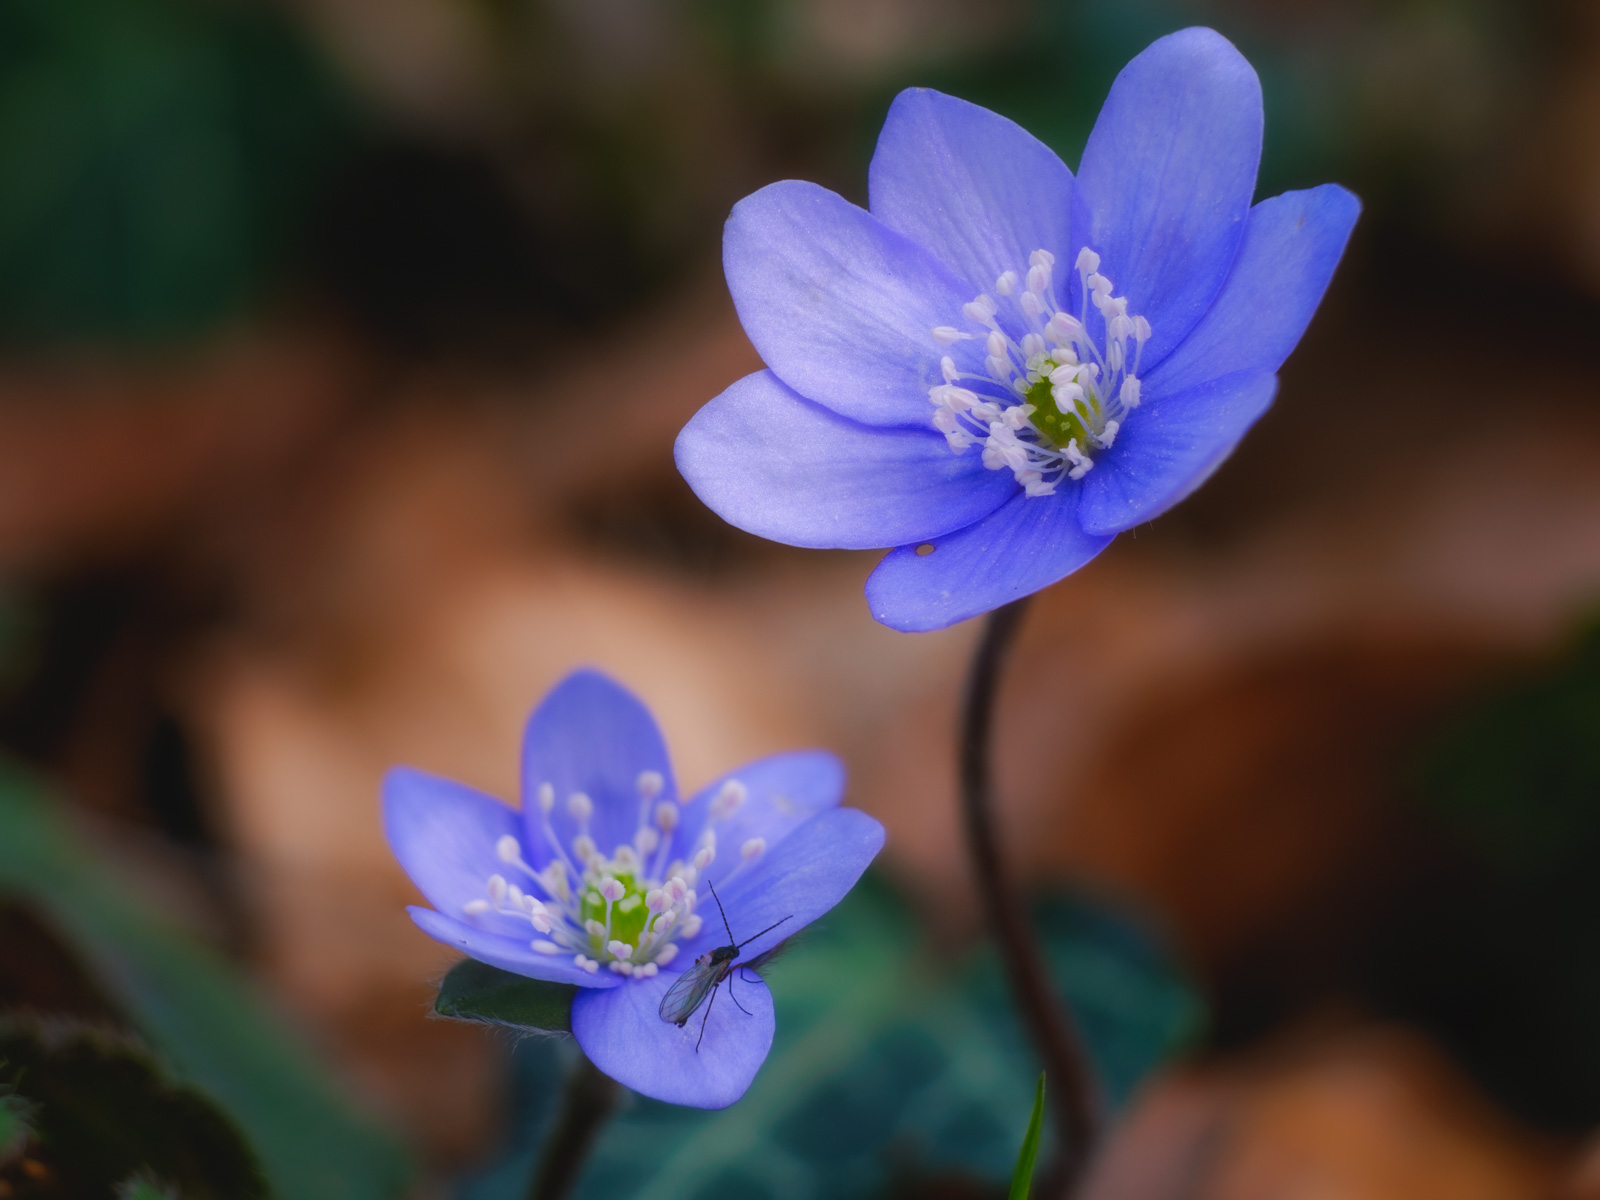 Liverwort blossoms (Hepatica nobilis) in the Teutoburg Forest (Bielefeld-Quelle, Germany)